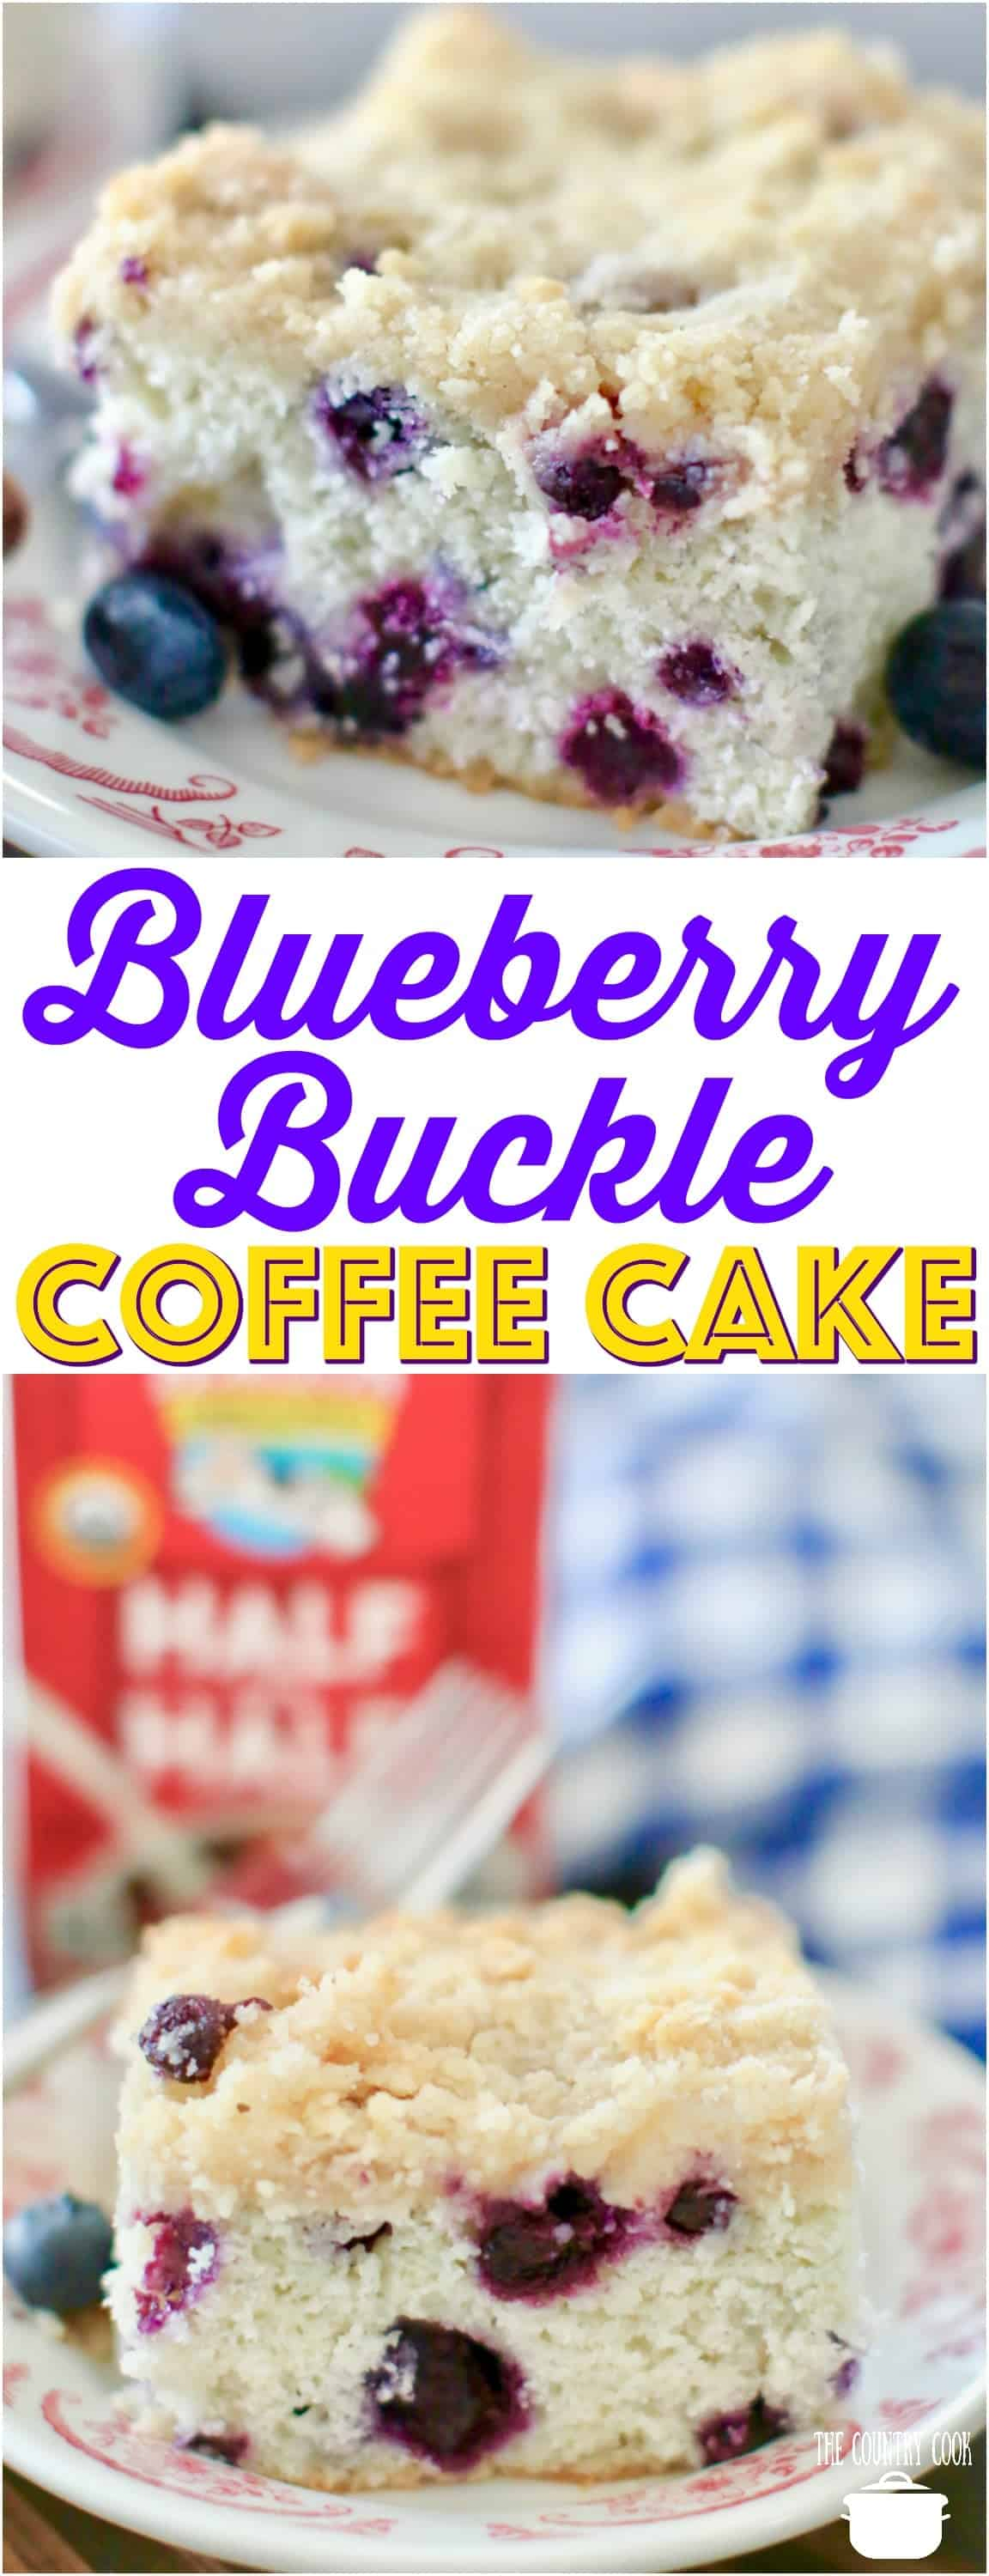 Easy Homemade Blueberry Buckle Coffee Cake recipe from The Country Cook #ad #springcoffee #cake #snackcake #blueberry #blueberries #cakes #recipes #ideas #crumble #streusel